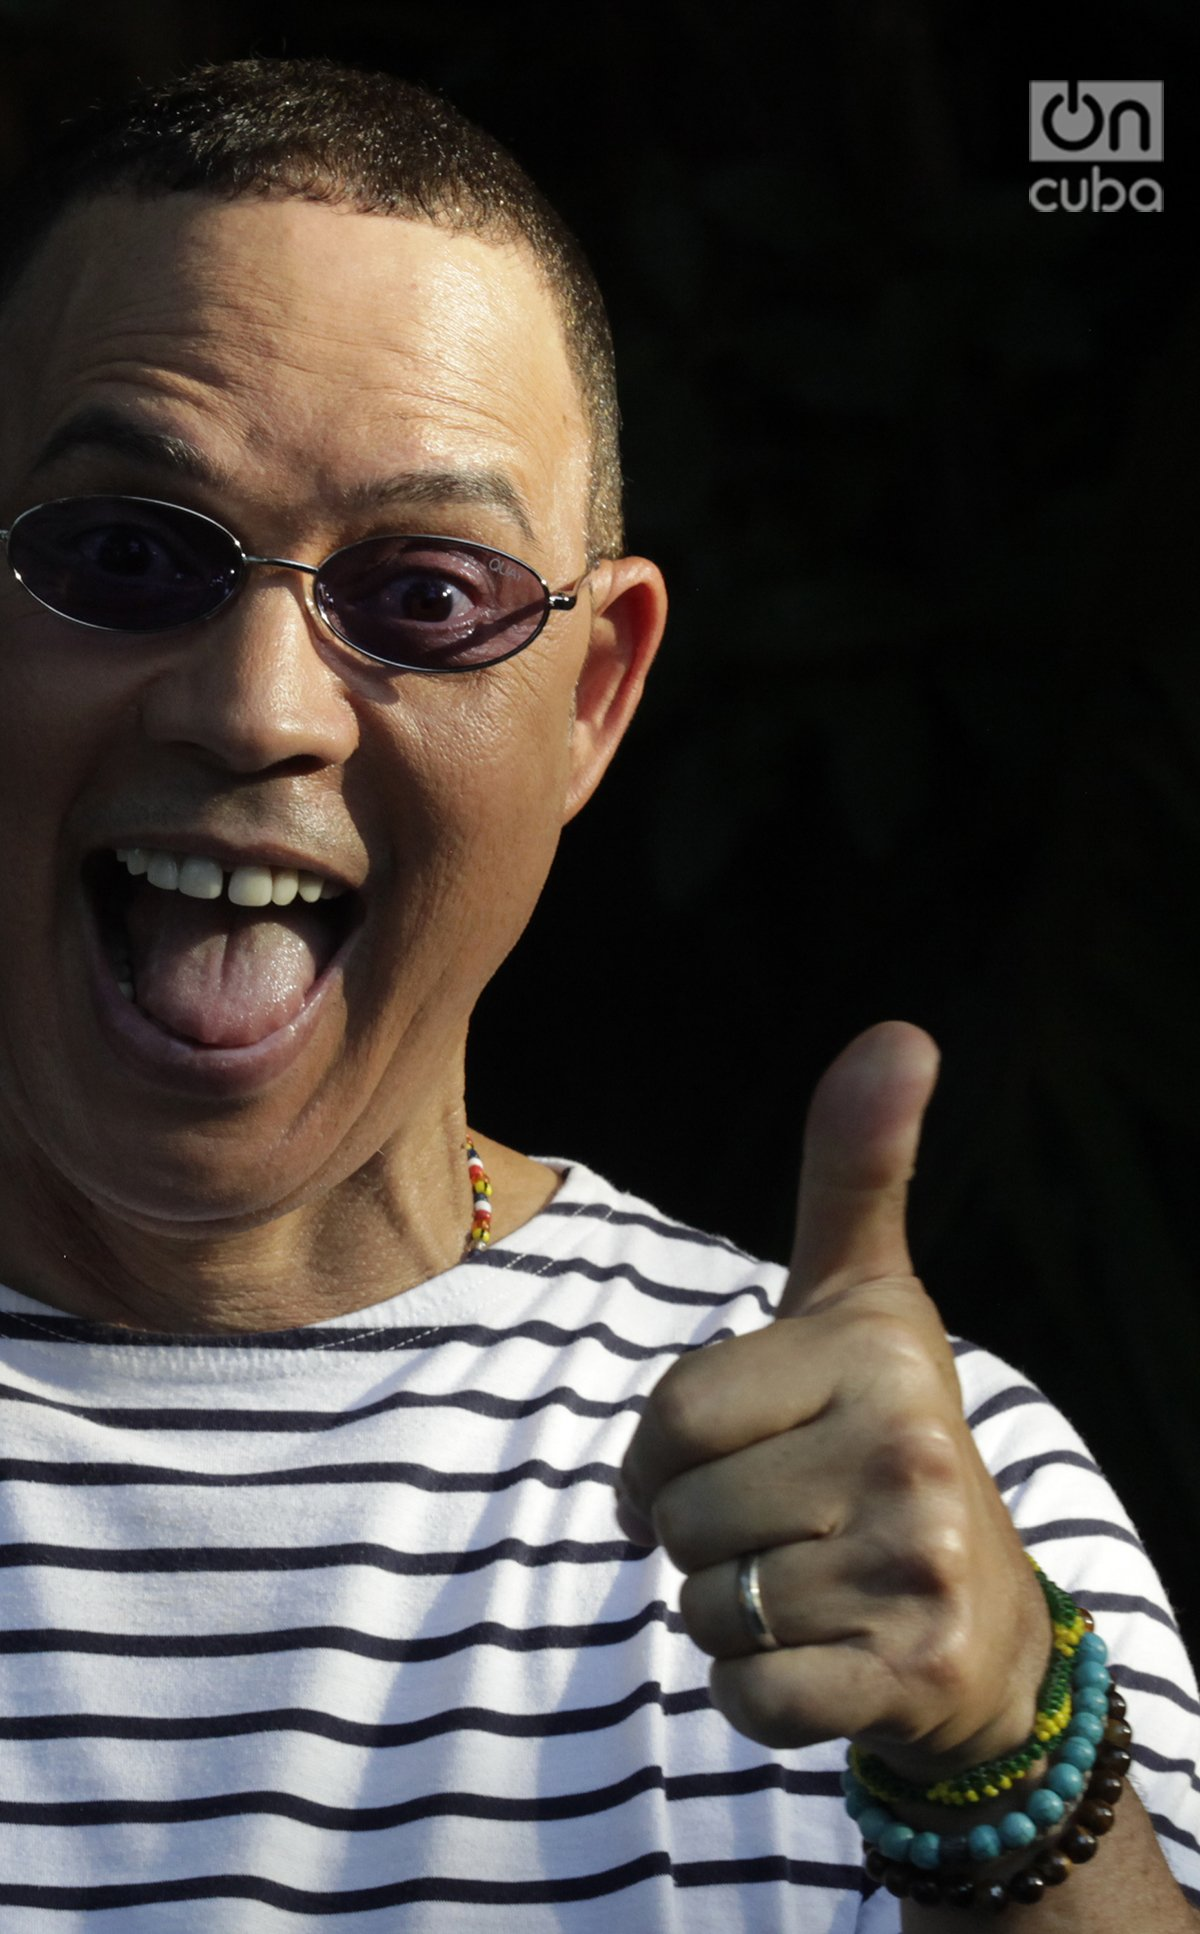 """Alexis Valdés: """"Cubans need to learn to dialogue"""" (+ video)"""